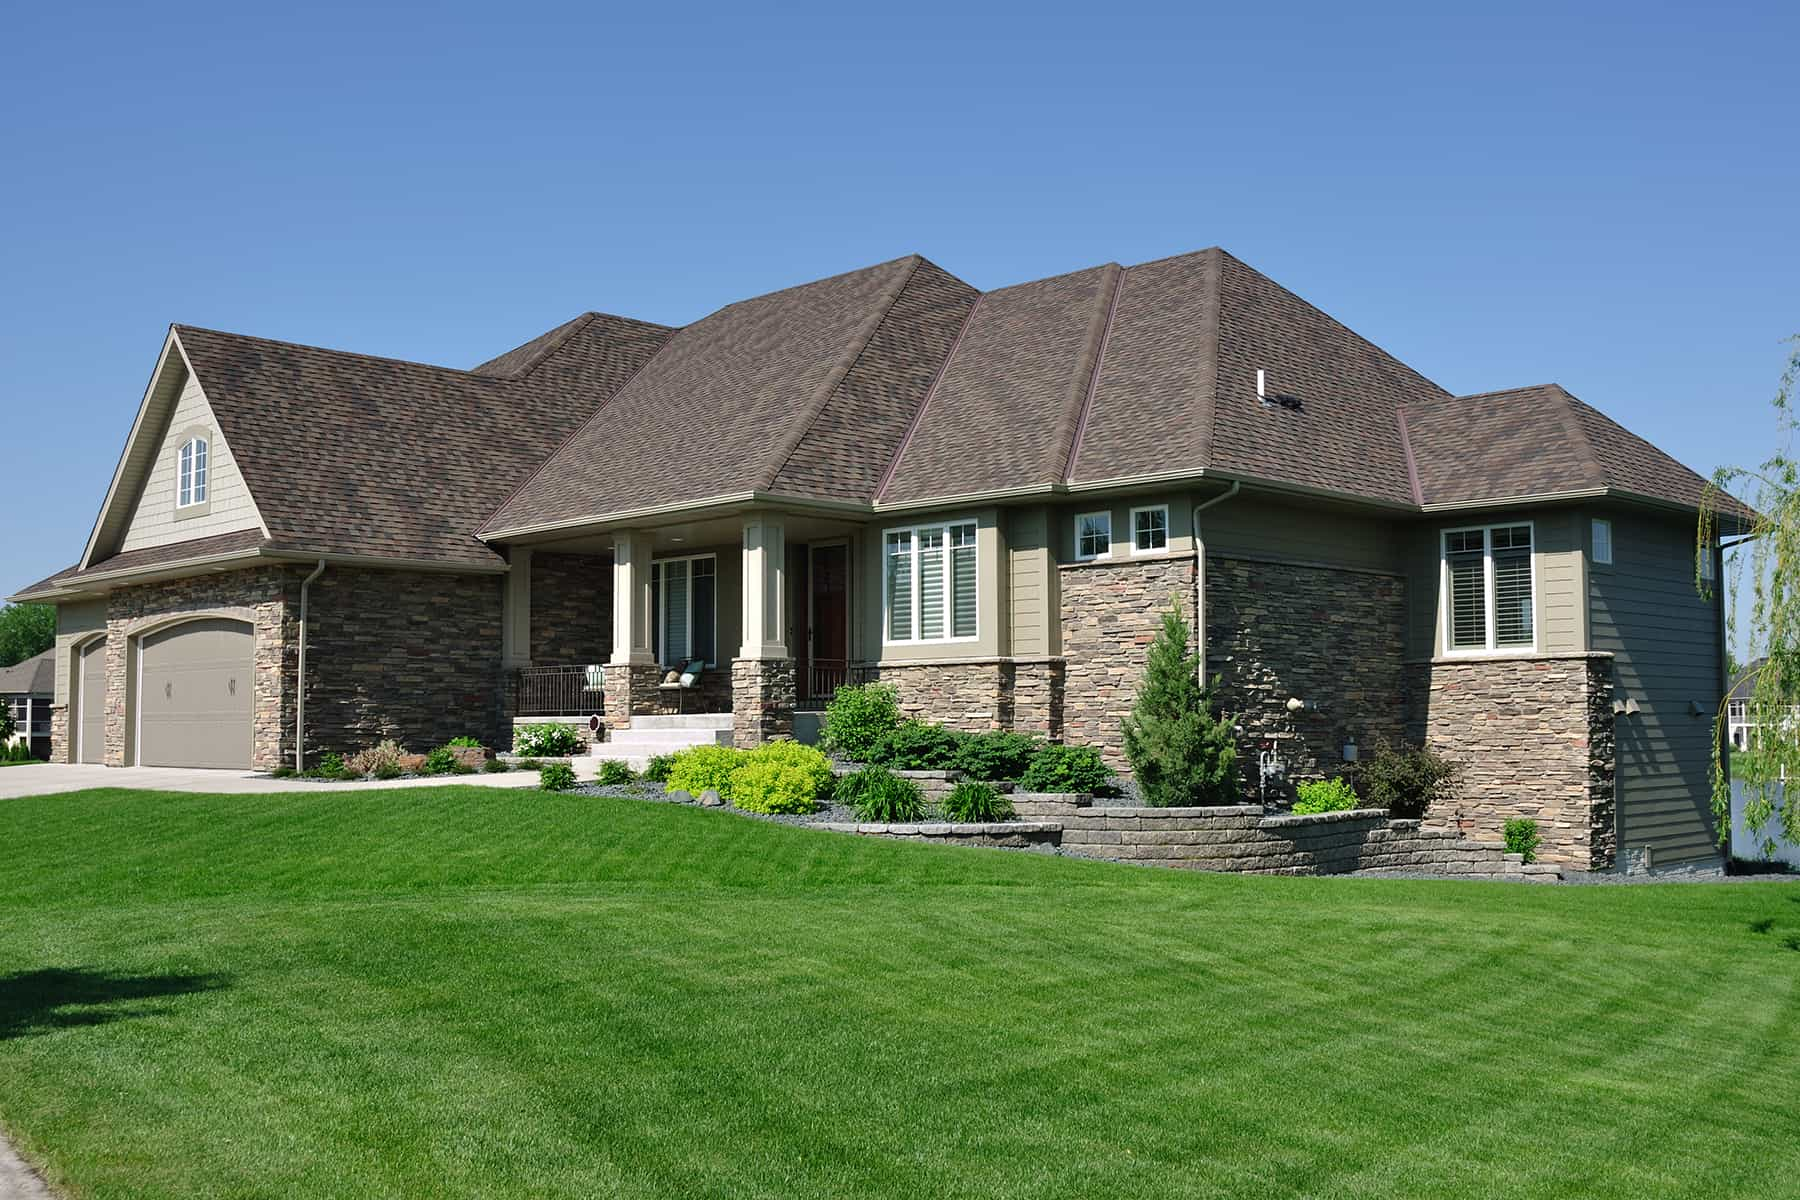 roofing insurance claims